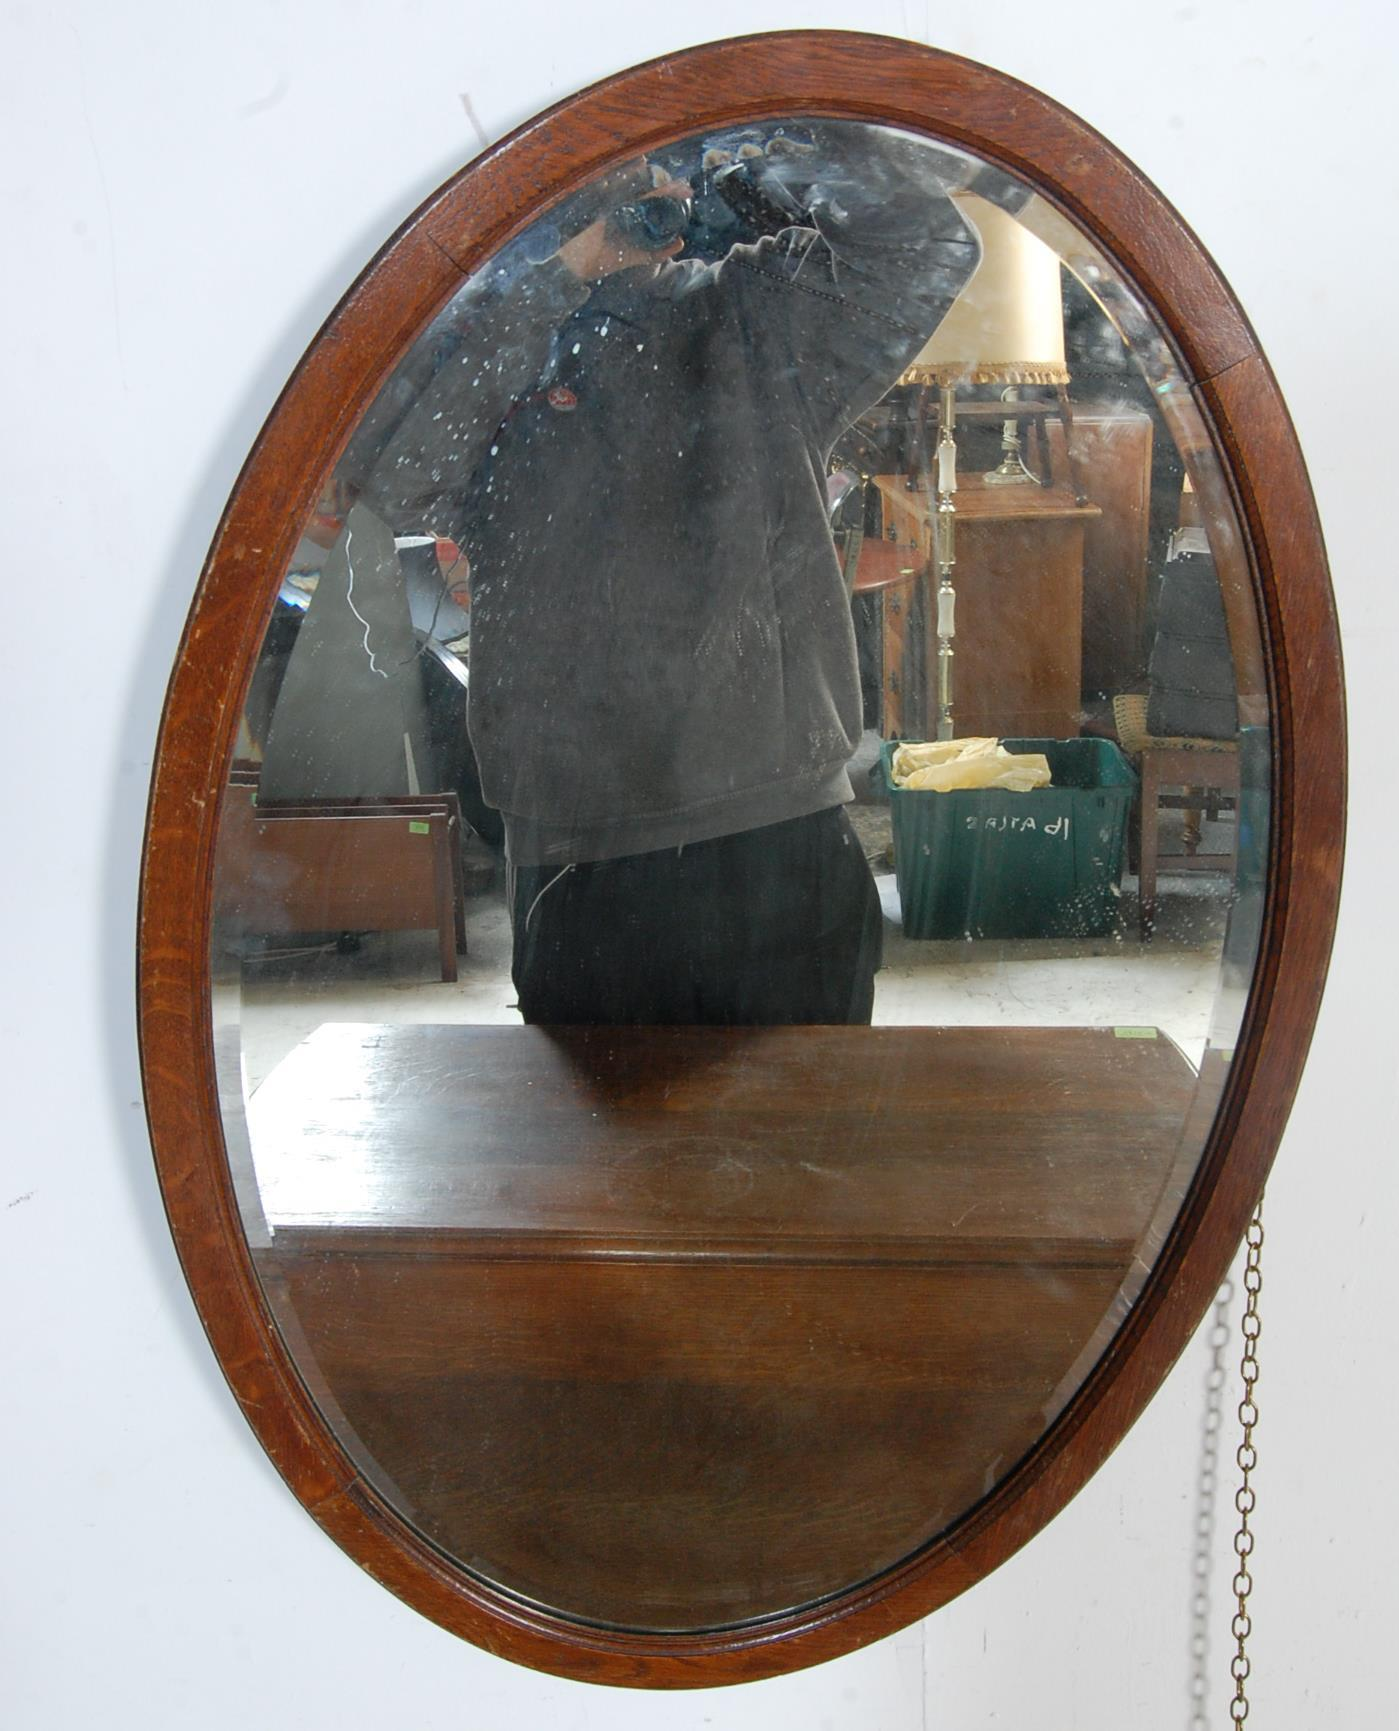 1940'S OAK DROP LEAF DINING TABLE AND OVAL WALL MIRROR - Image 3 of 6